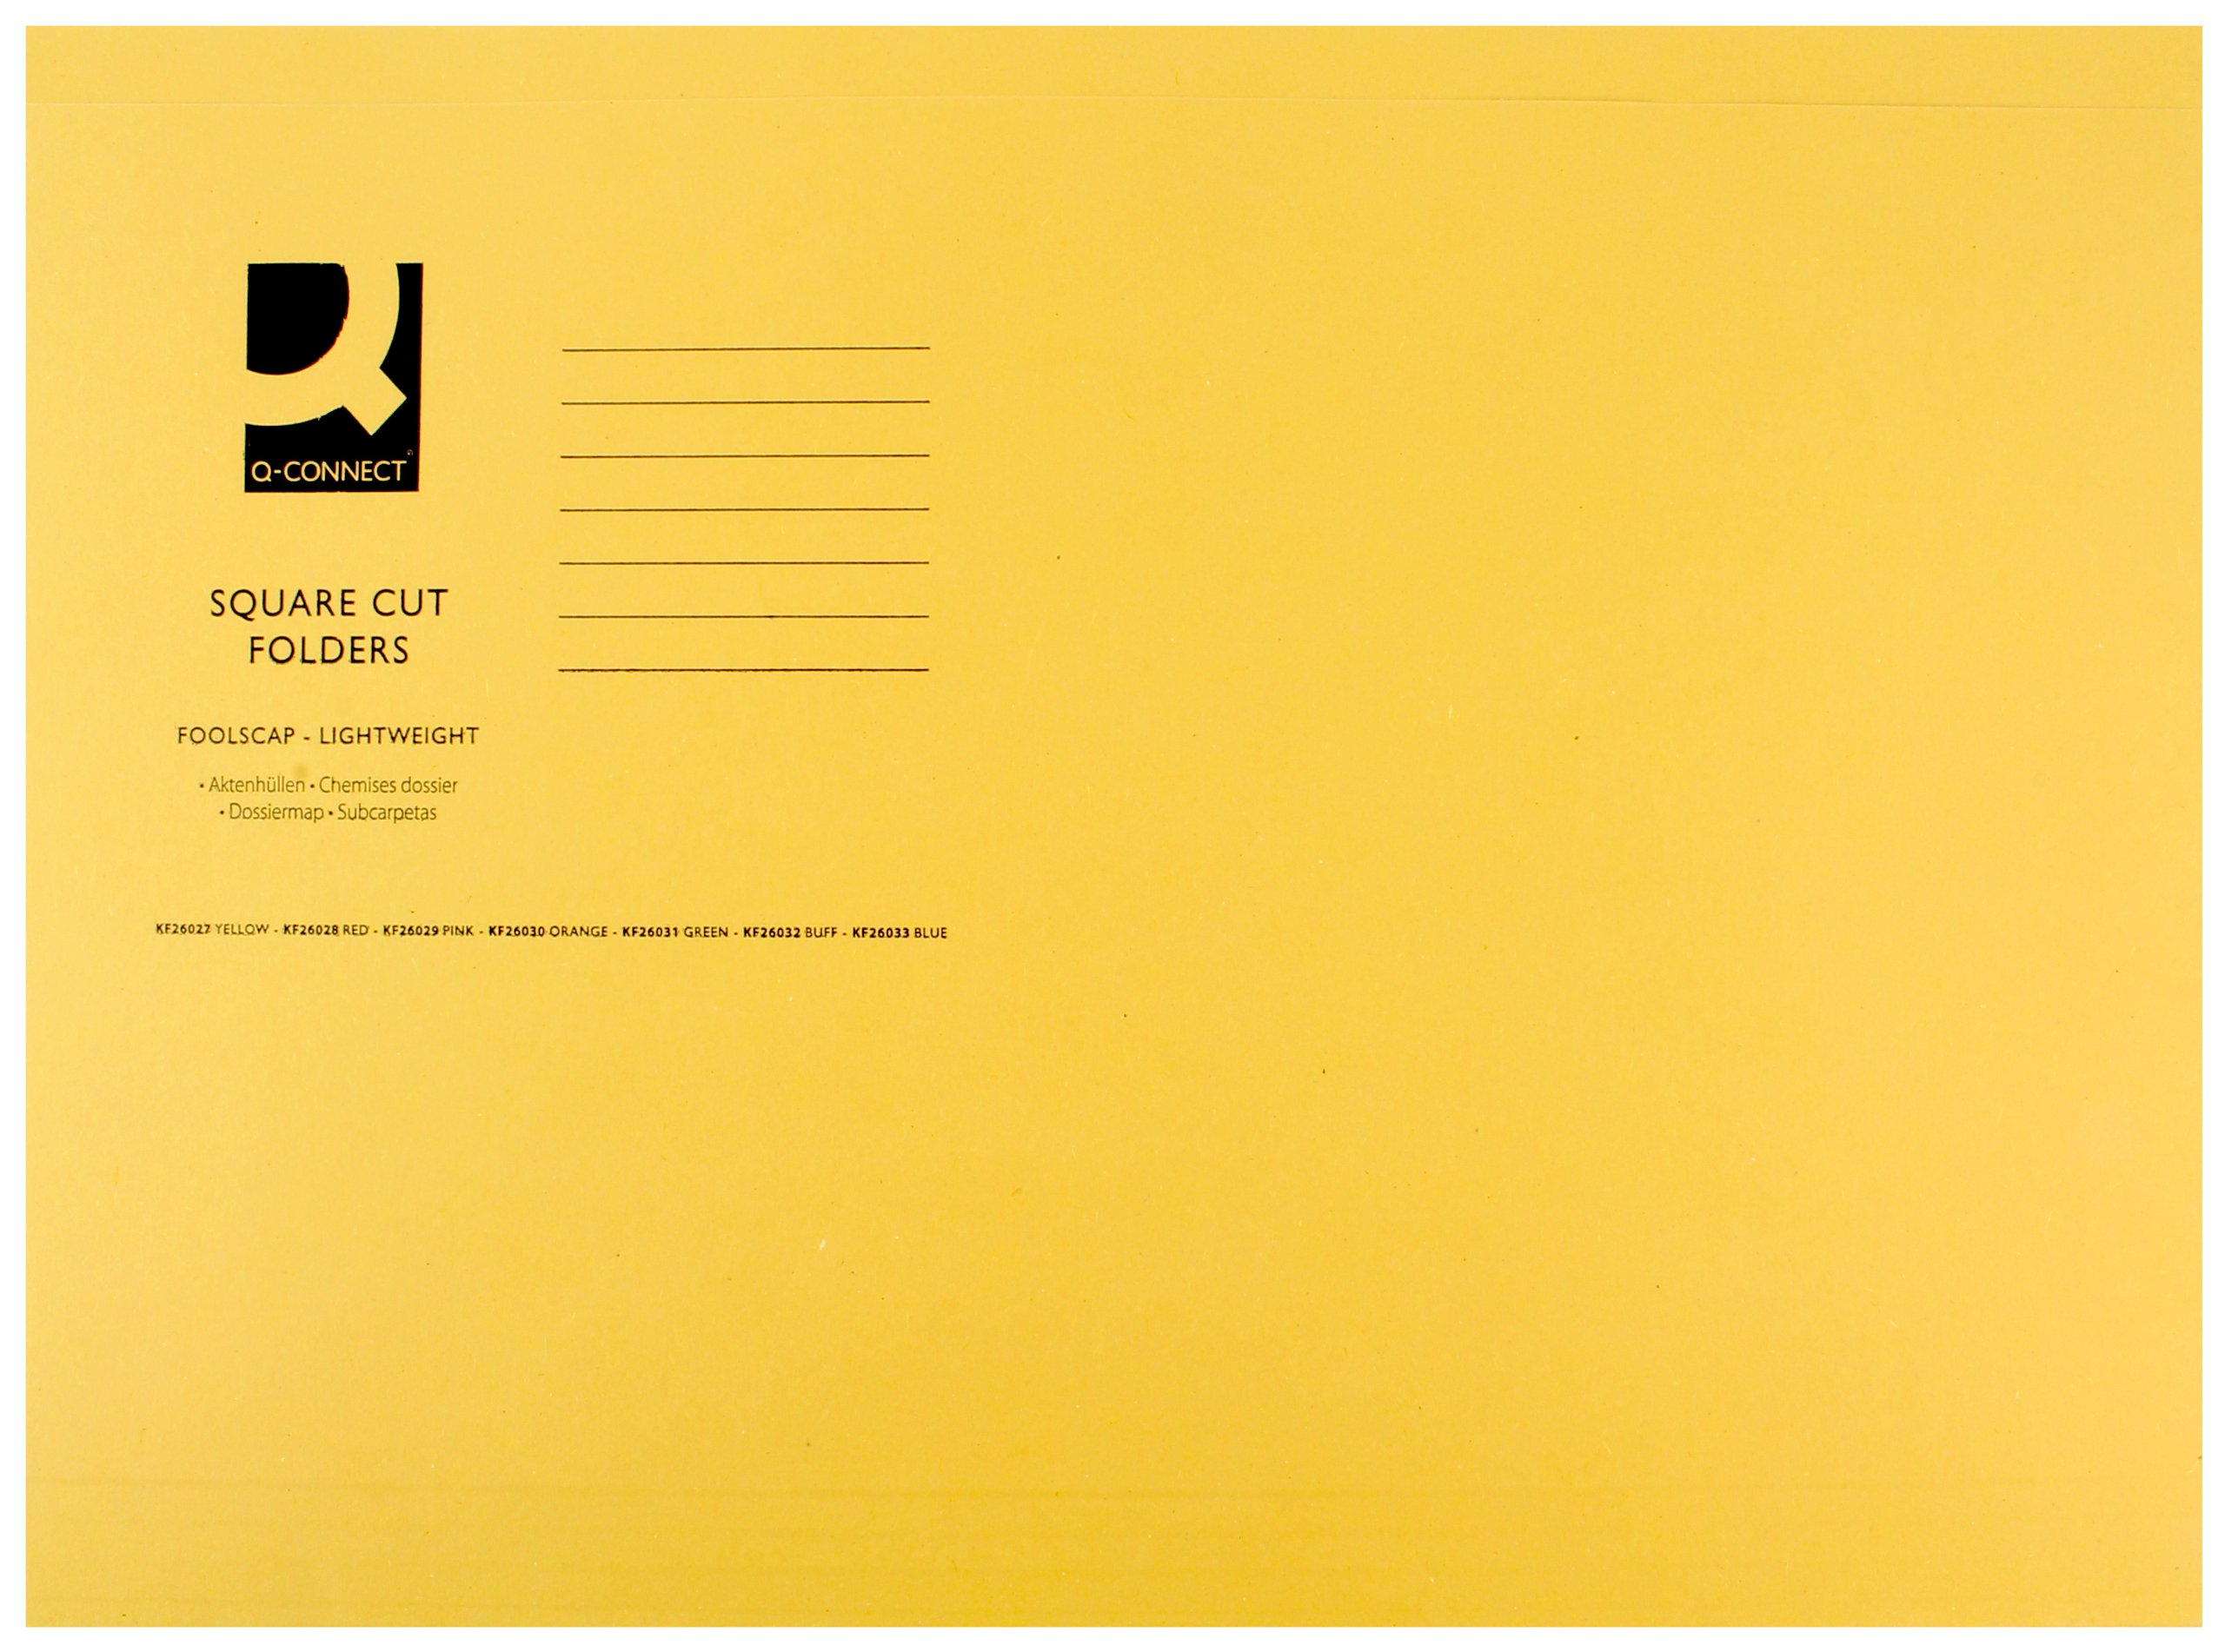 Q Connect Light Weight 180gsm Foolscap Square Cut Folder - Yellow